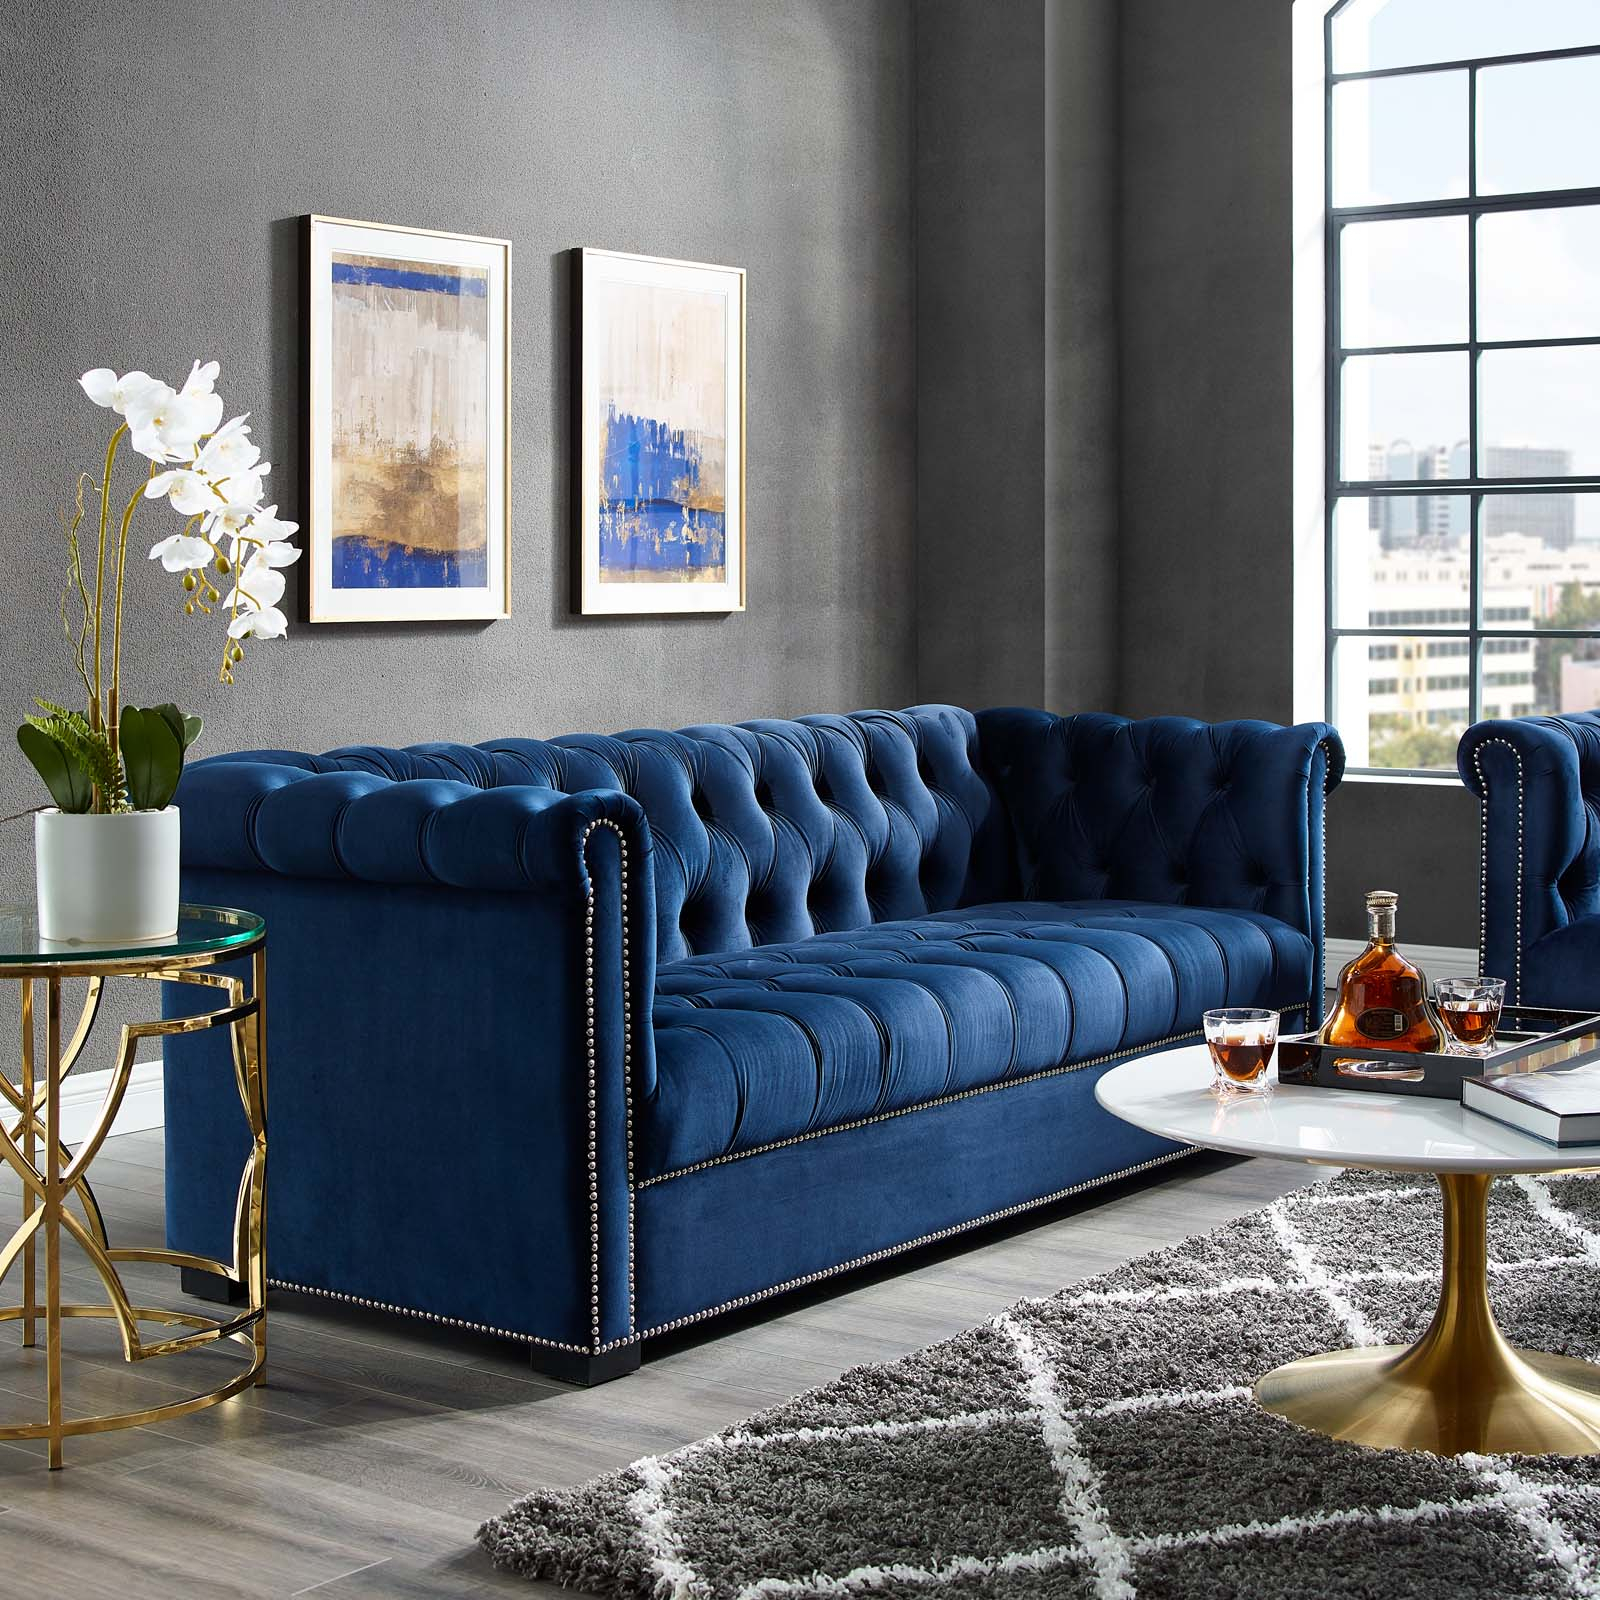 Heritage Upholstered Velvet Sofa Midnight Blue Intended For Blue Sofa Chairs (View 2 of 15)